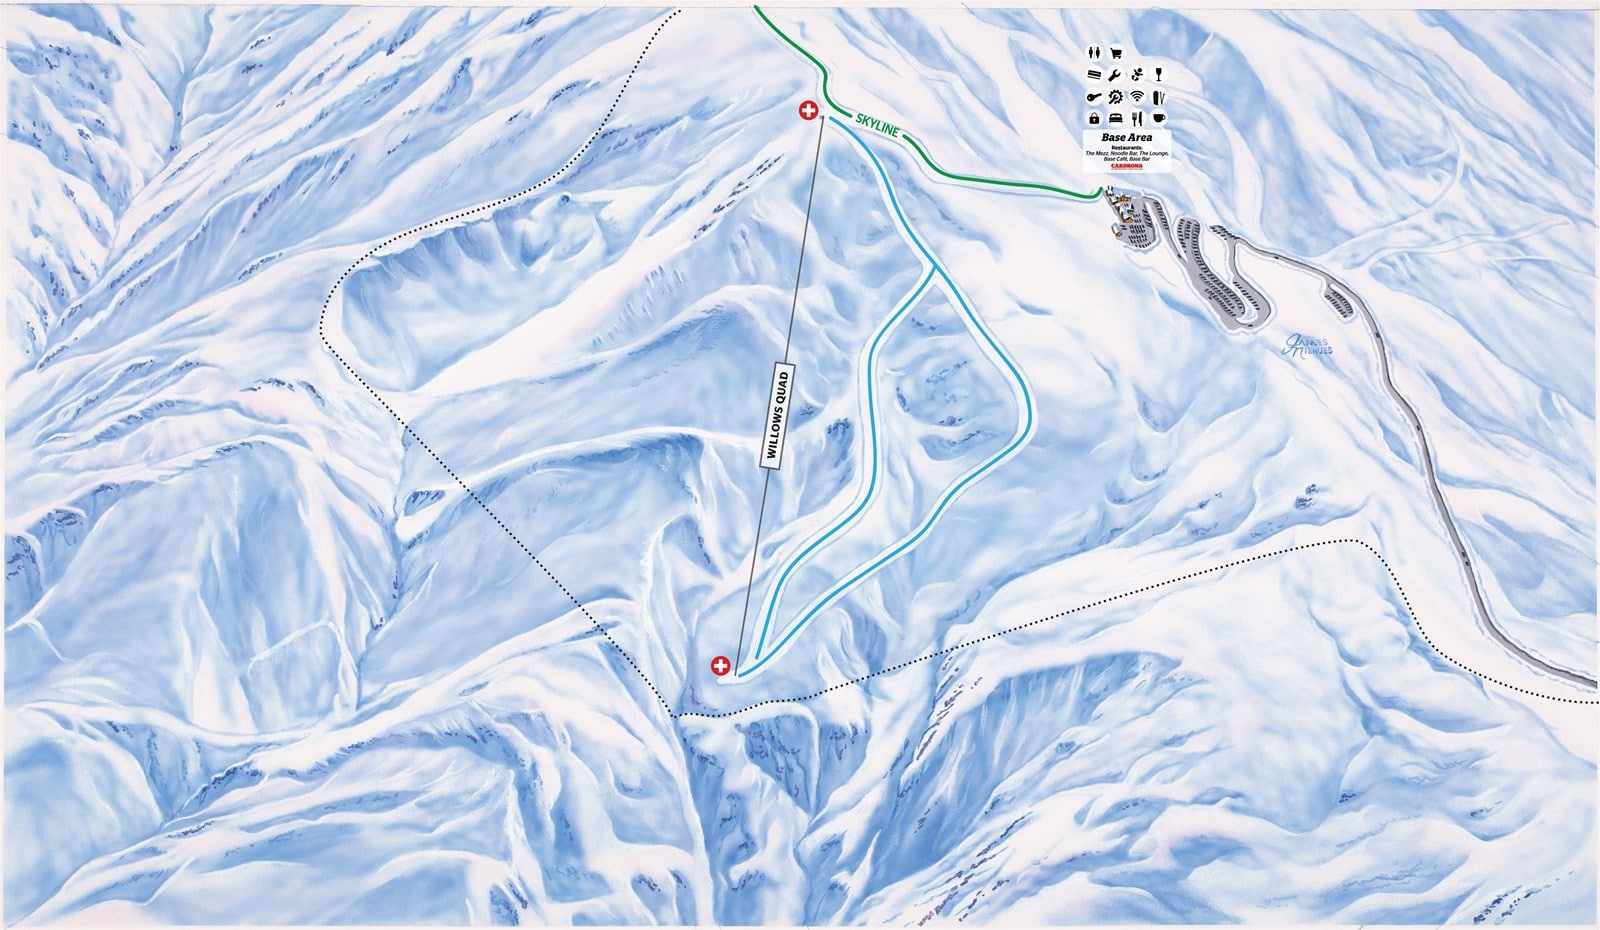 trail map cardrona showing new skiable terrain